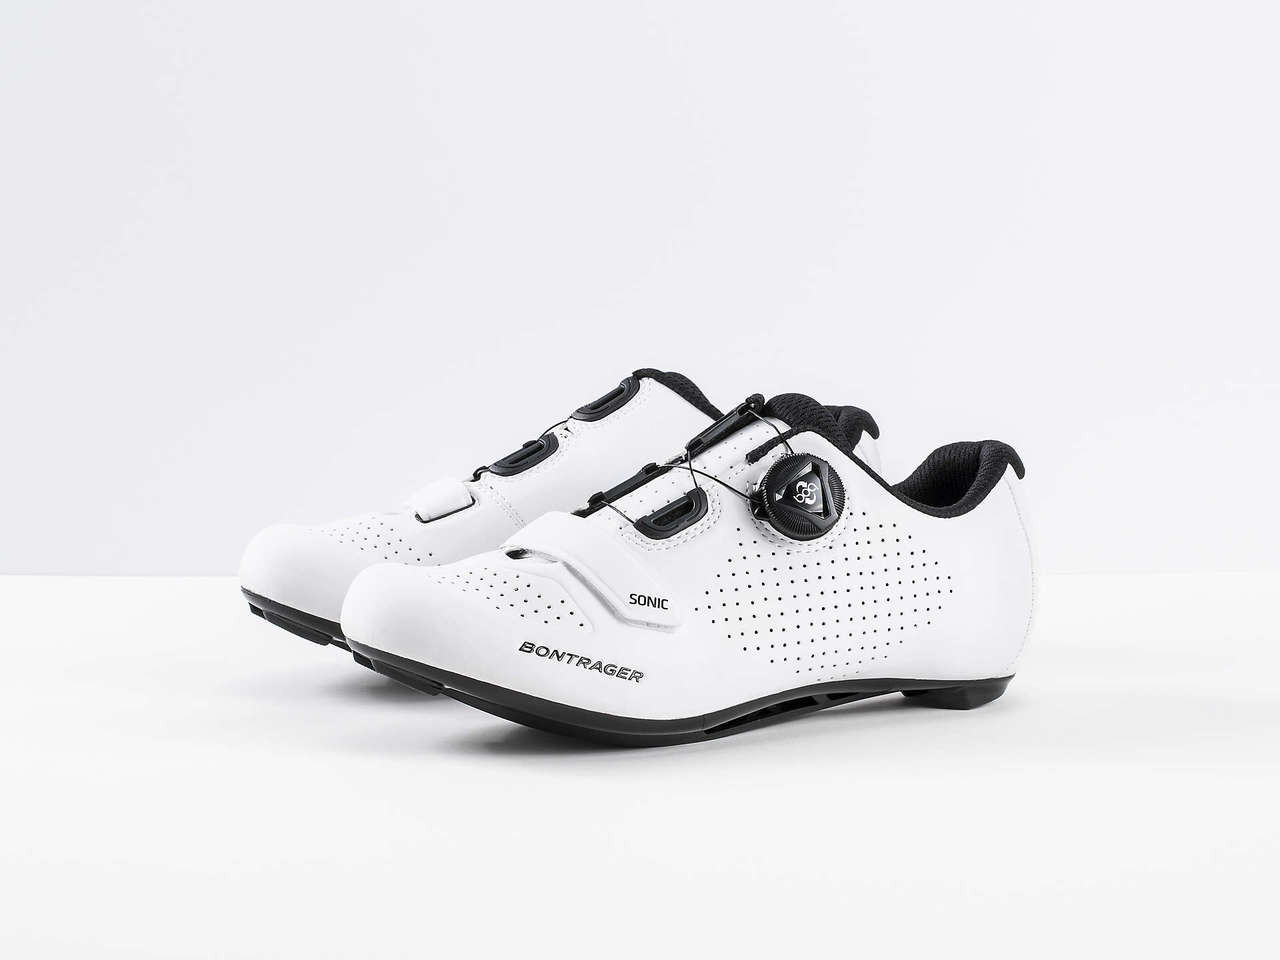 Bontrager Sonic Womens Road Cycling Shoes - Gear West Ski and Run f79050262